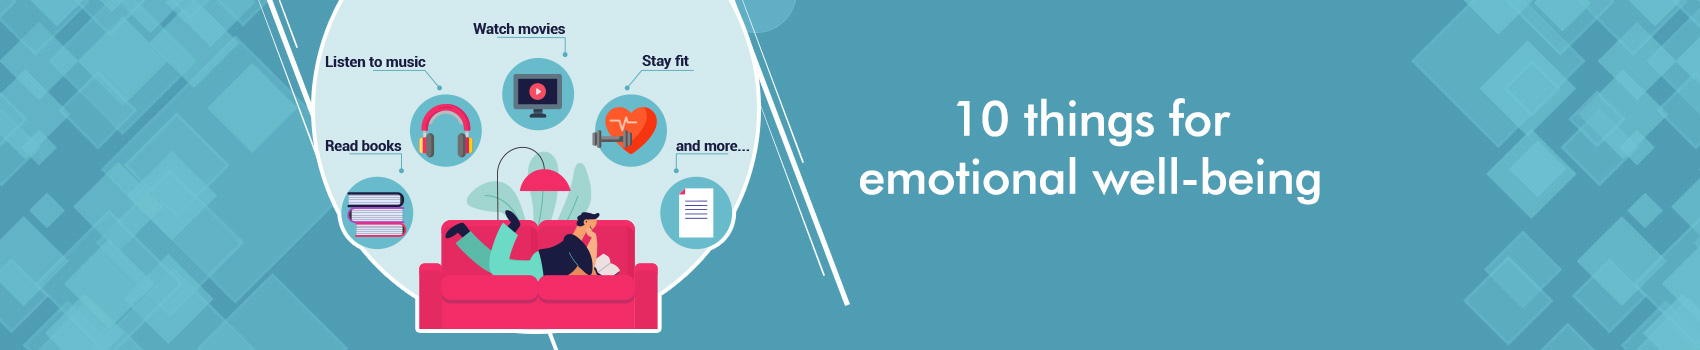 10 things for emotional well-being